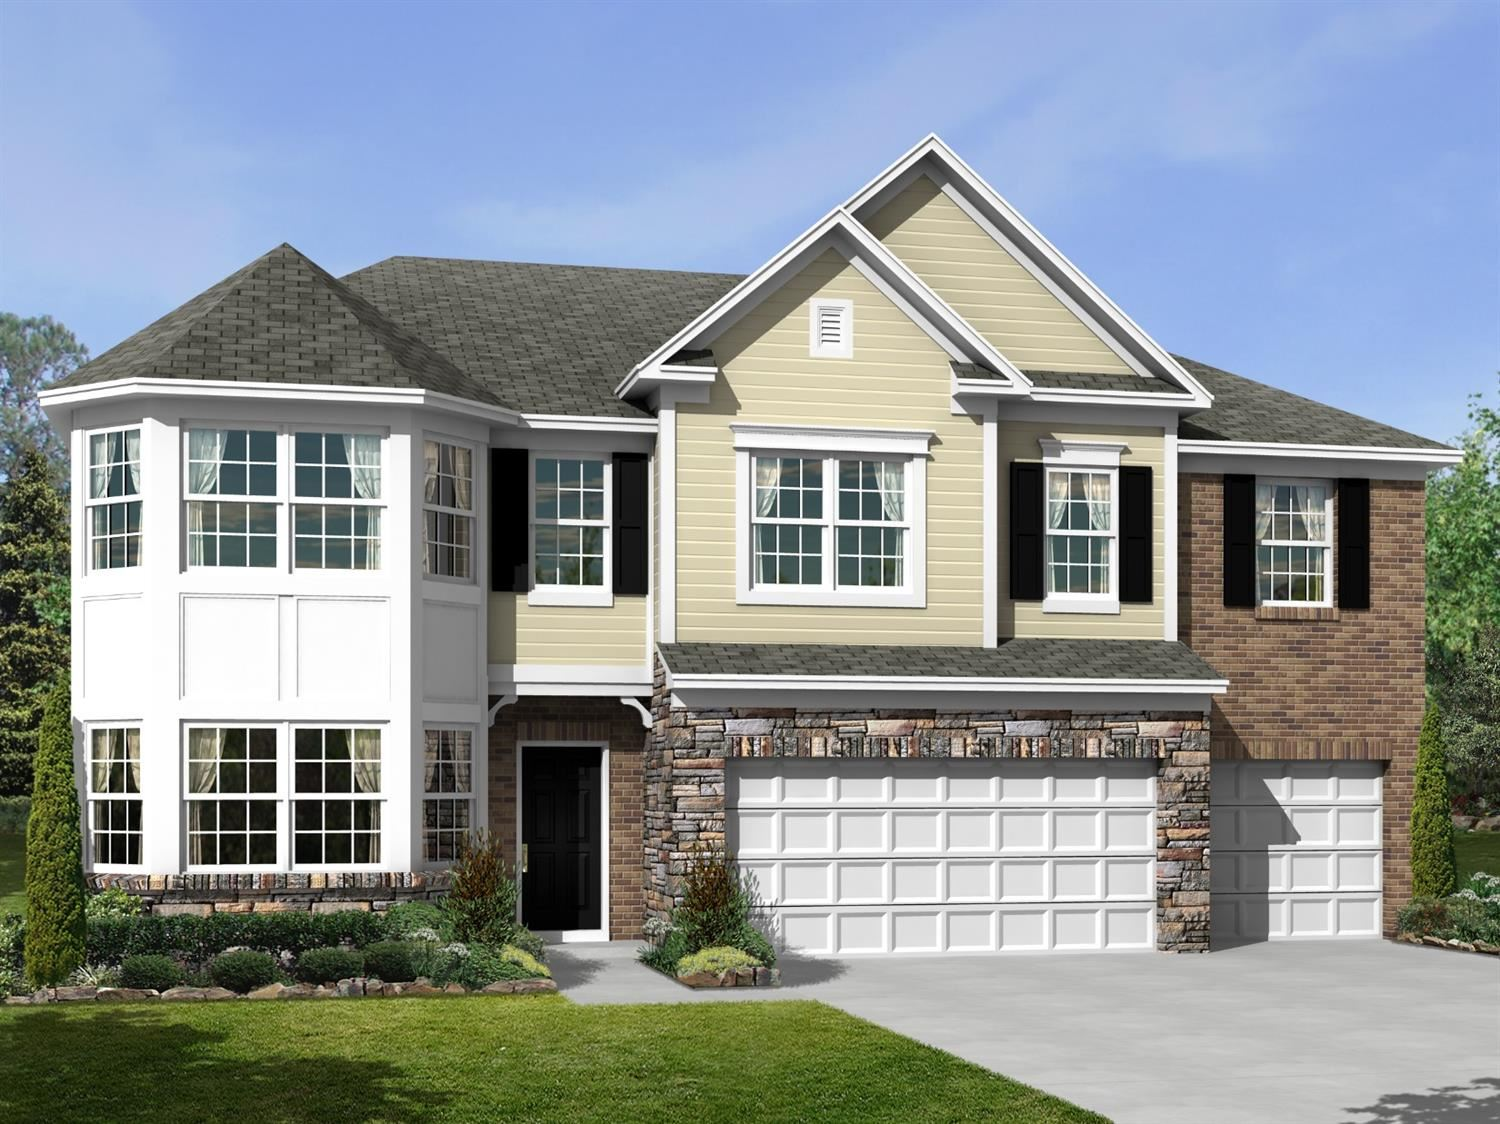 4492 Tylers Vista #29, West Chester, OH 45069 - #: 1669440